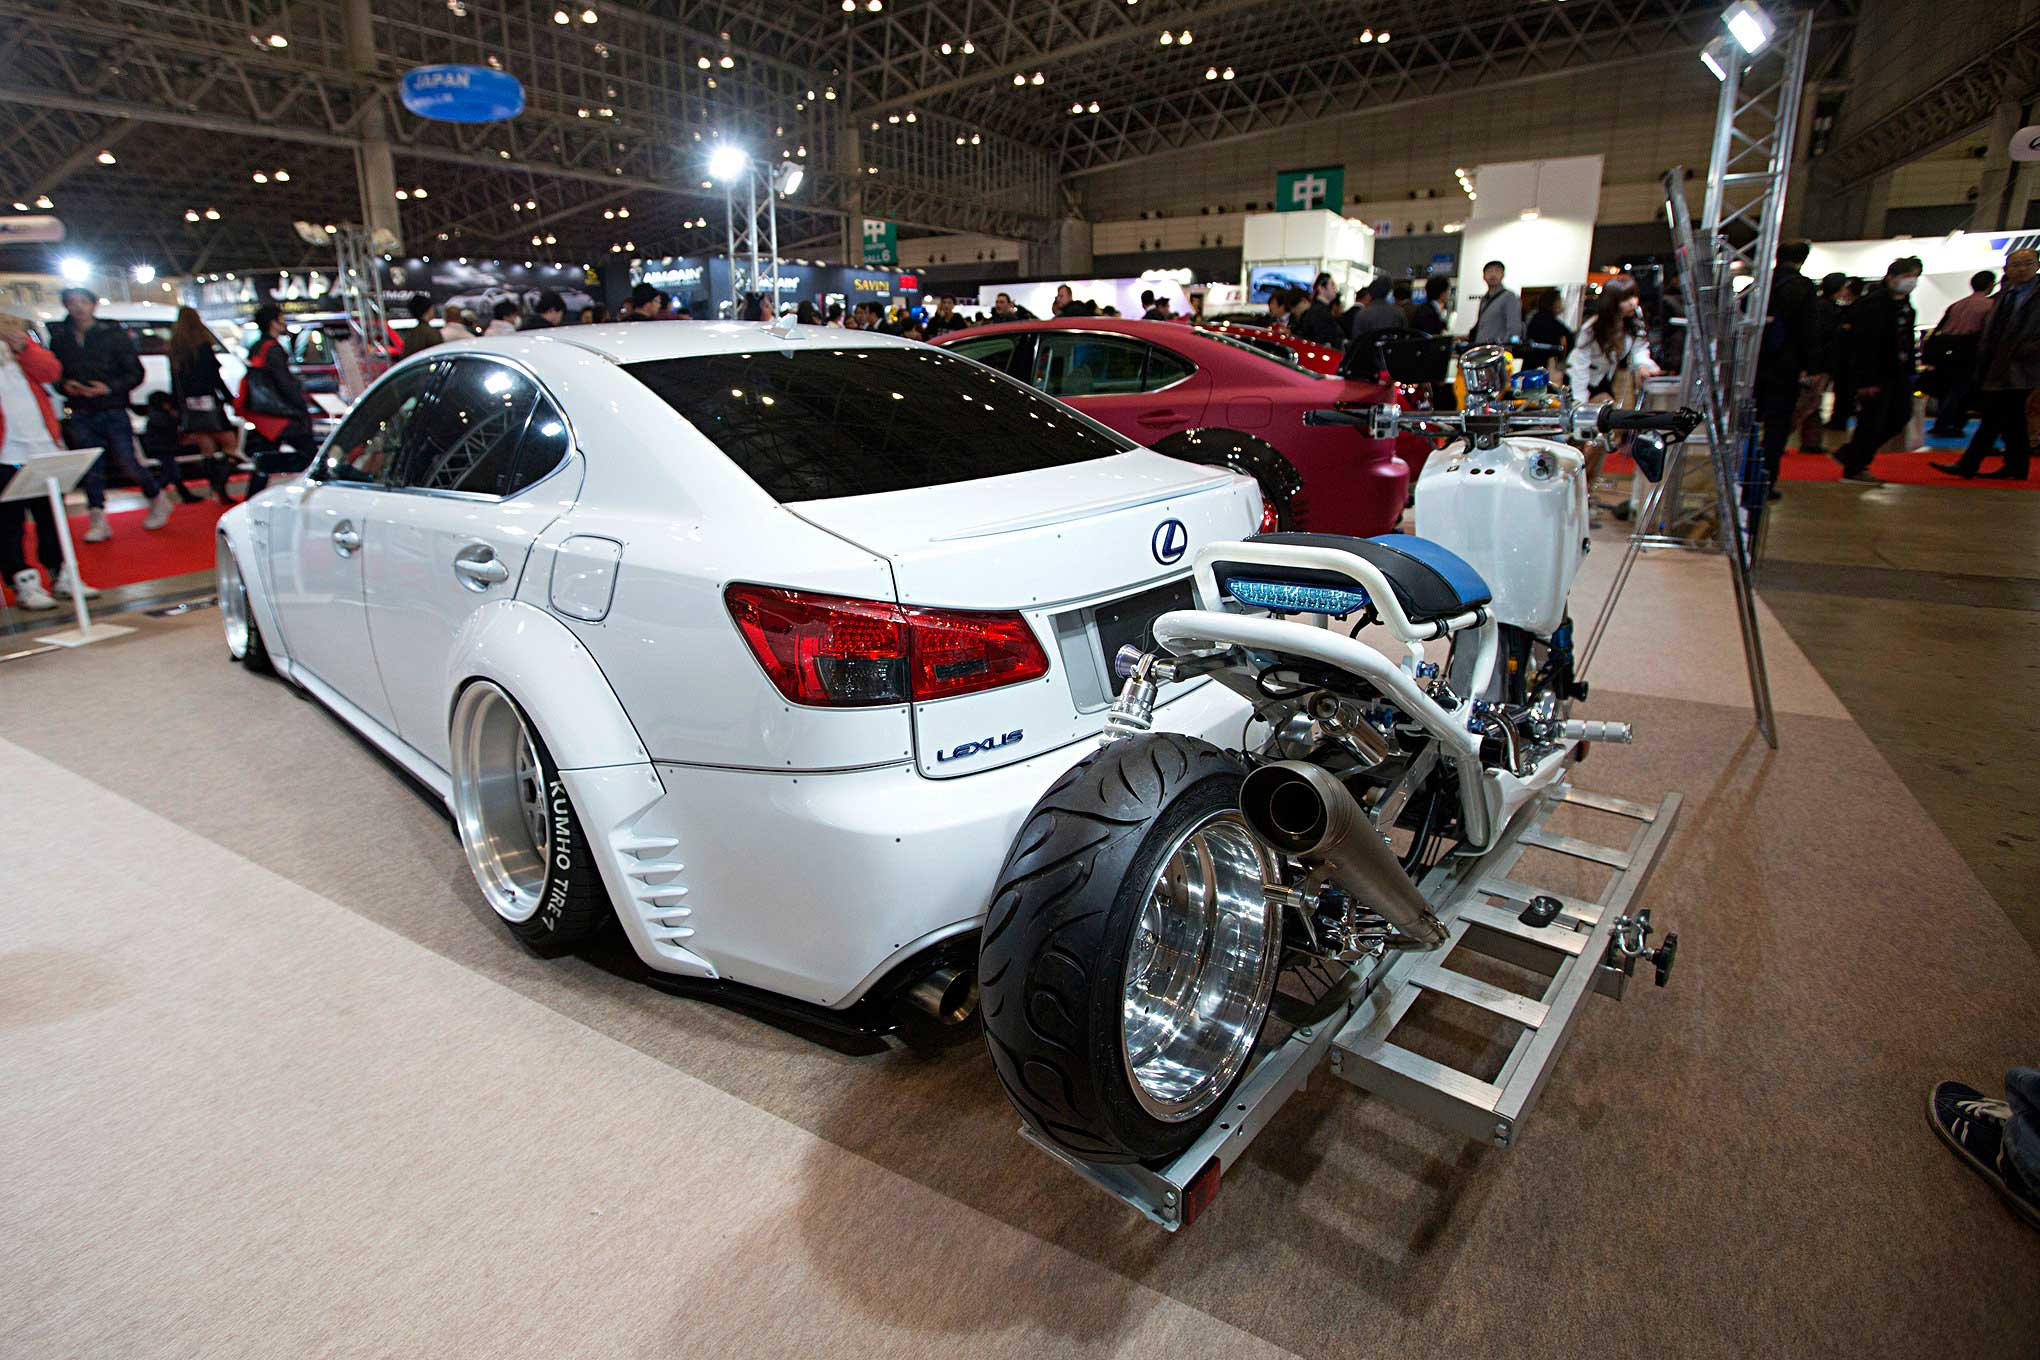 Tokyo Auto Salon 2017 - Only in Japan Part 2